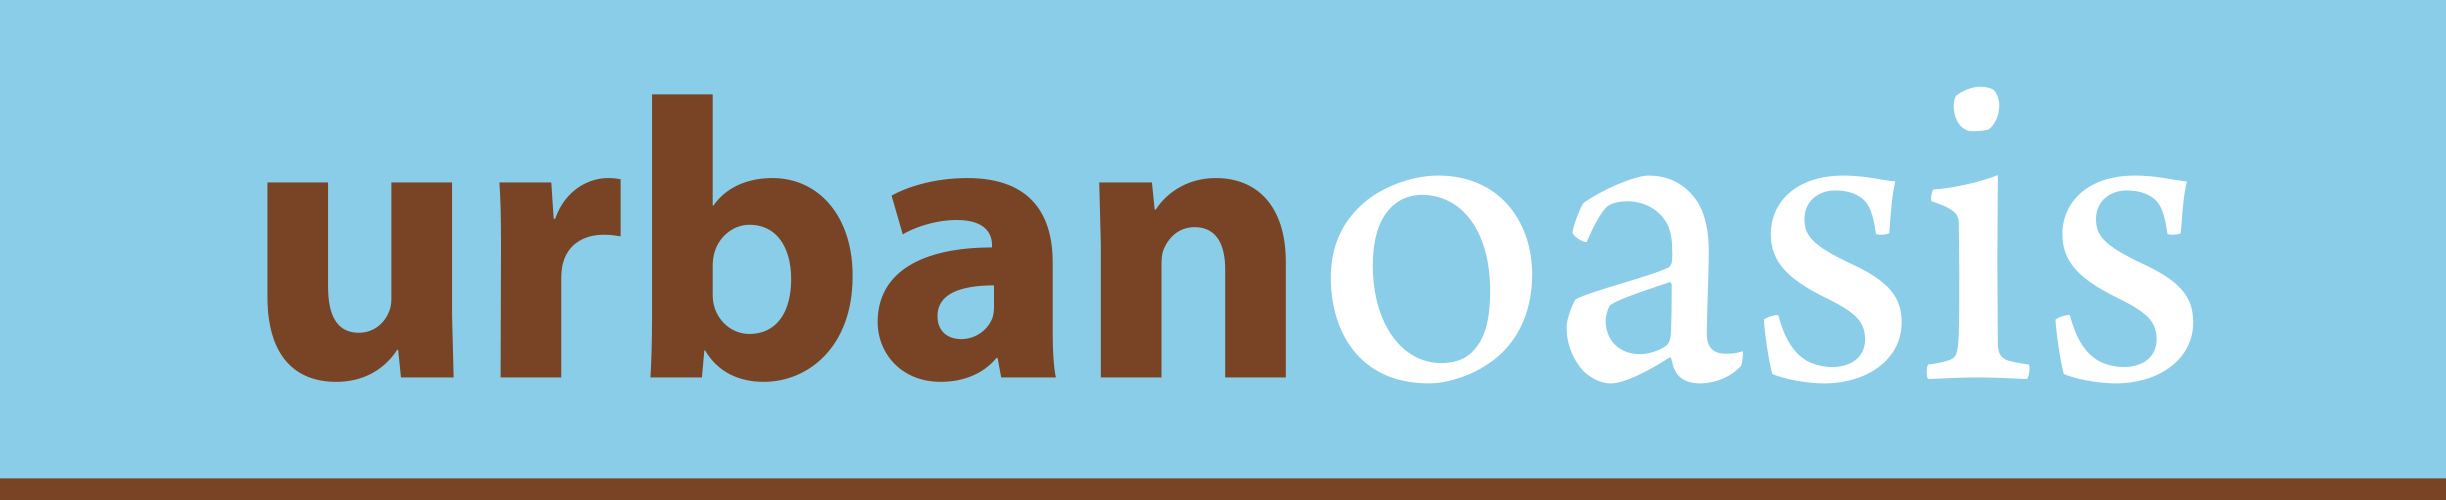 Urban Oasis Logo new wide.jpg